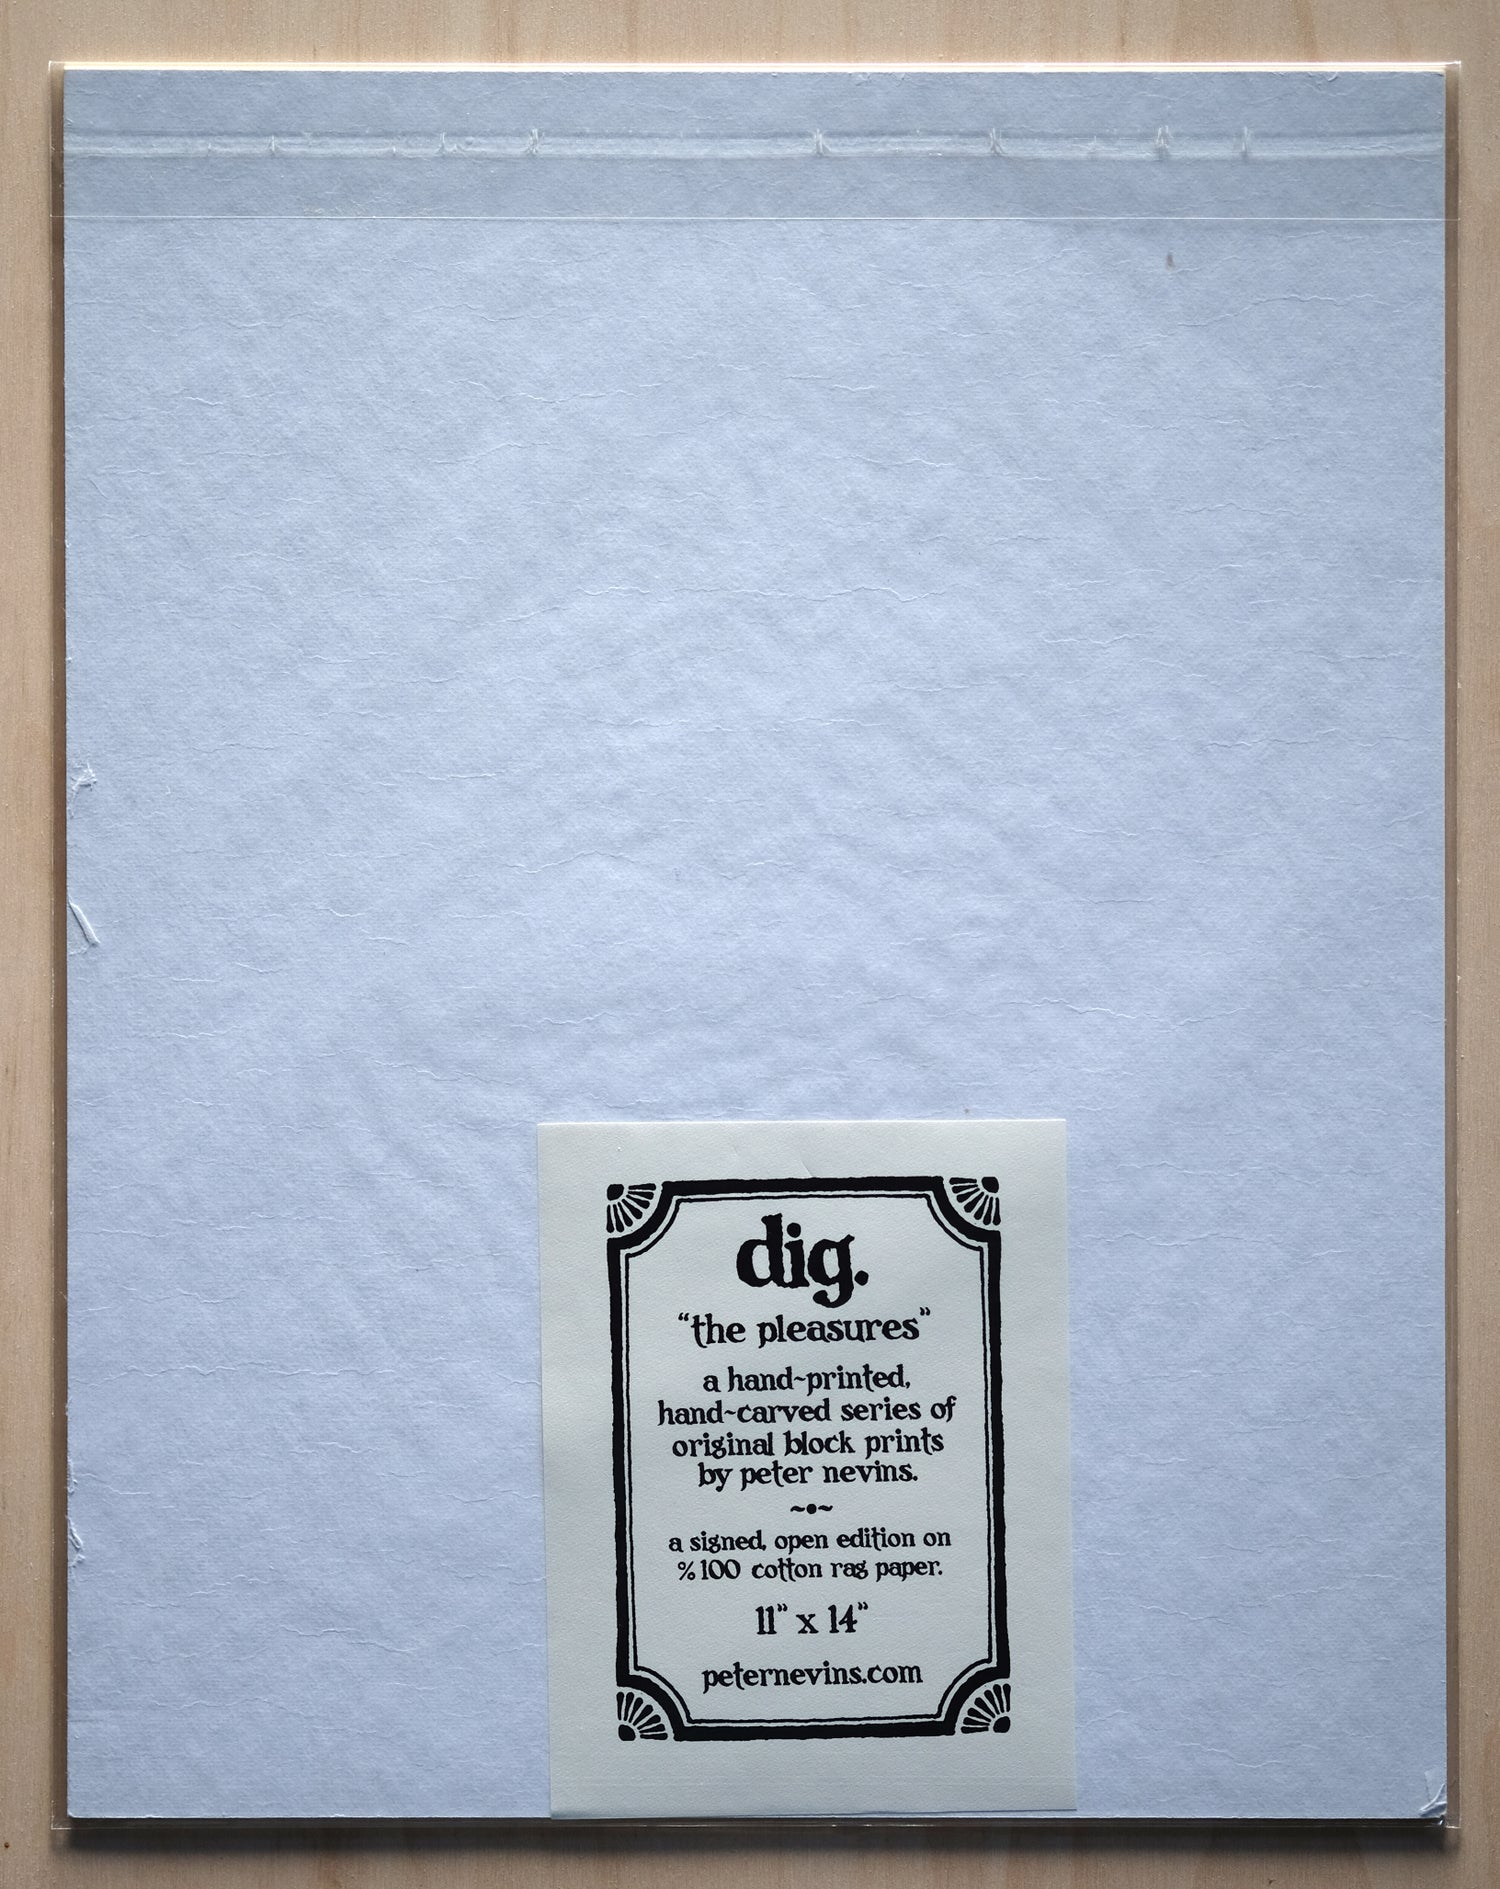 "Image of dig.  11""x14"" HAND-PRINTED ORIGINAL BLOCK PRINT"